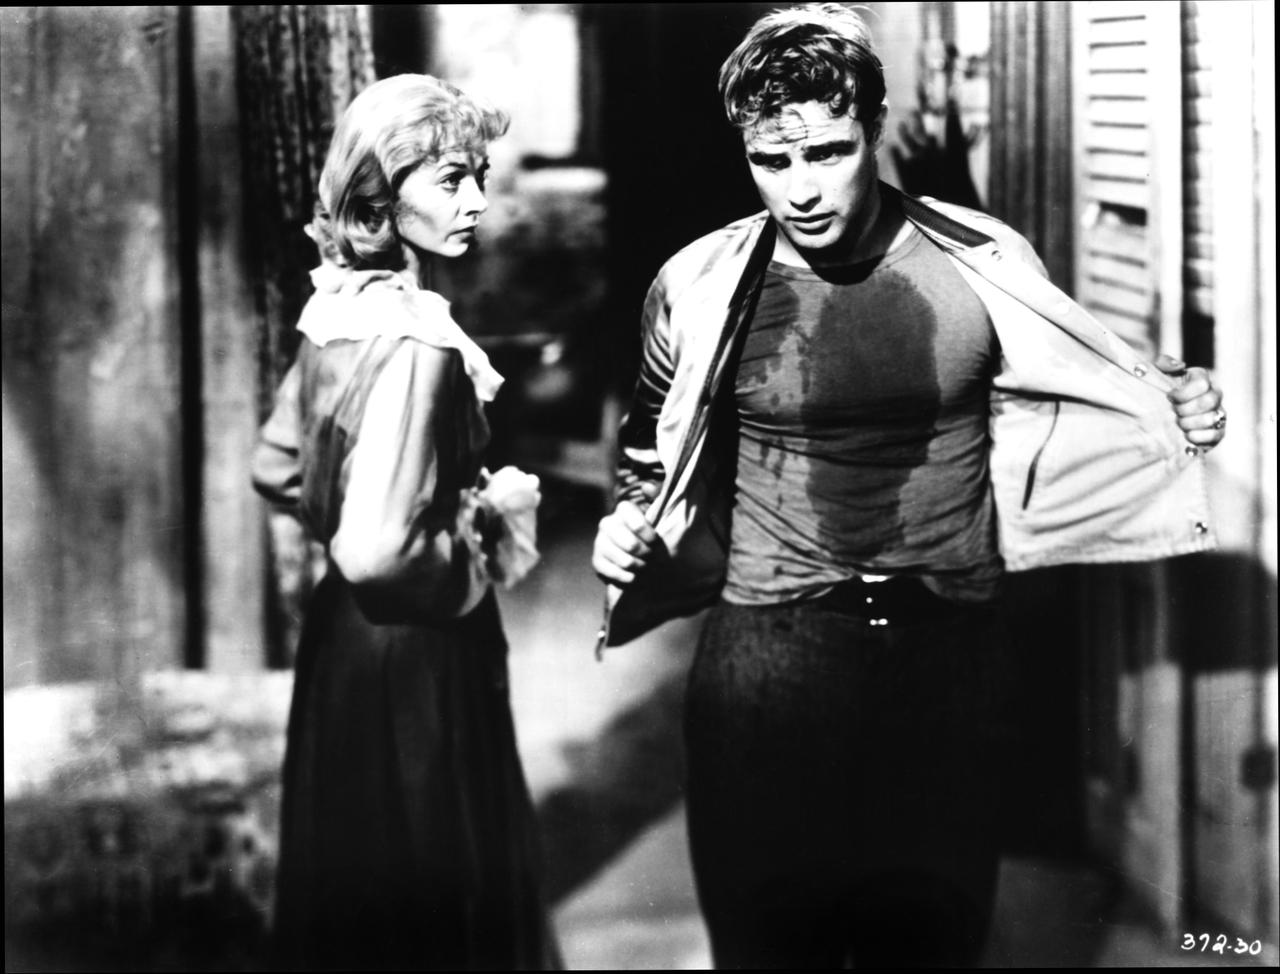 A Streetcar Named Desire at 1280 x 960 size wallpapers HD quality